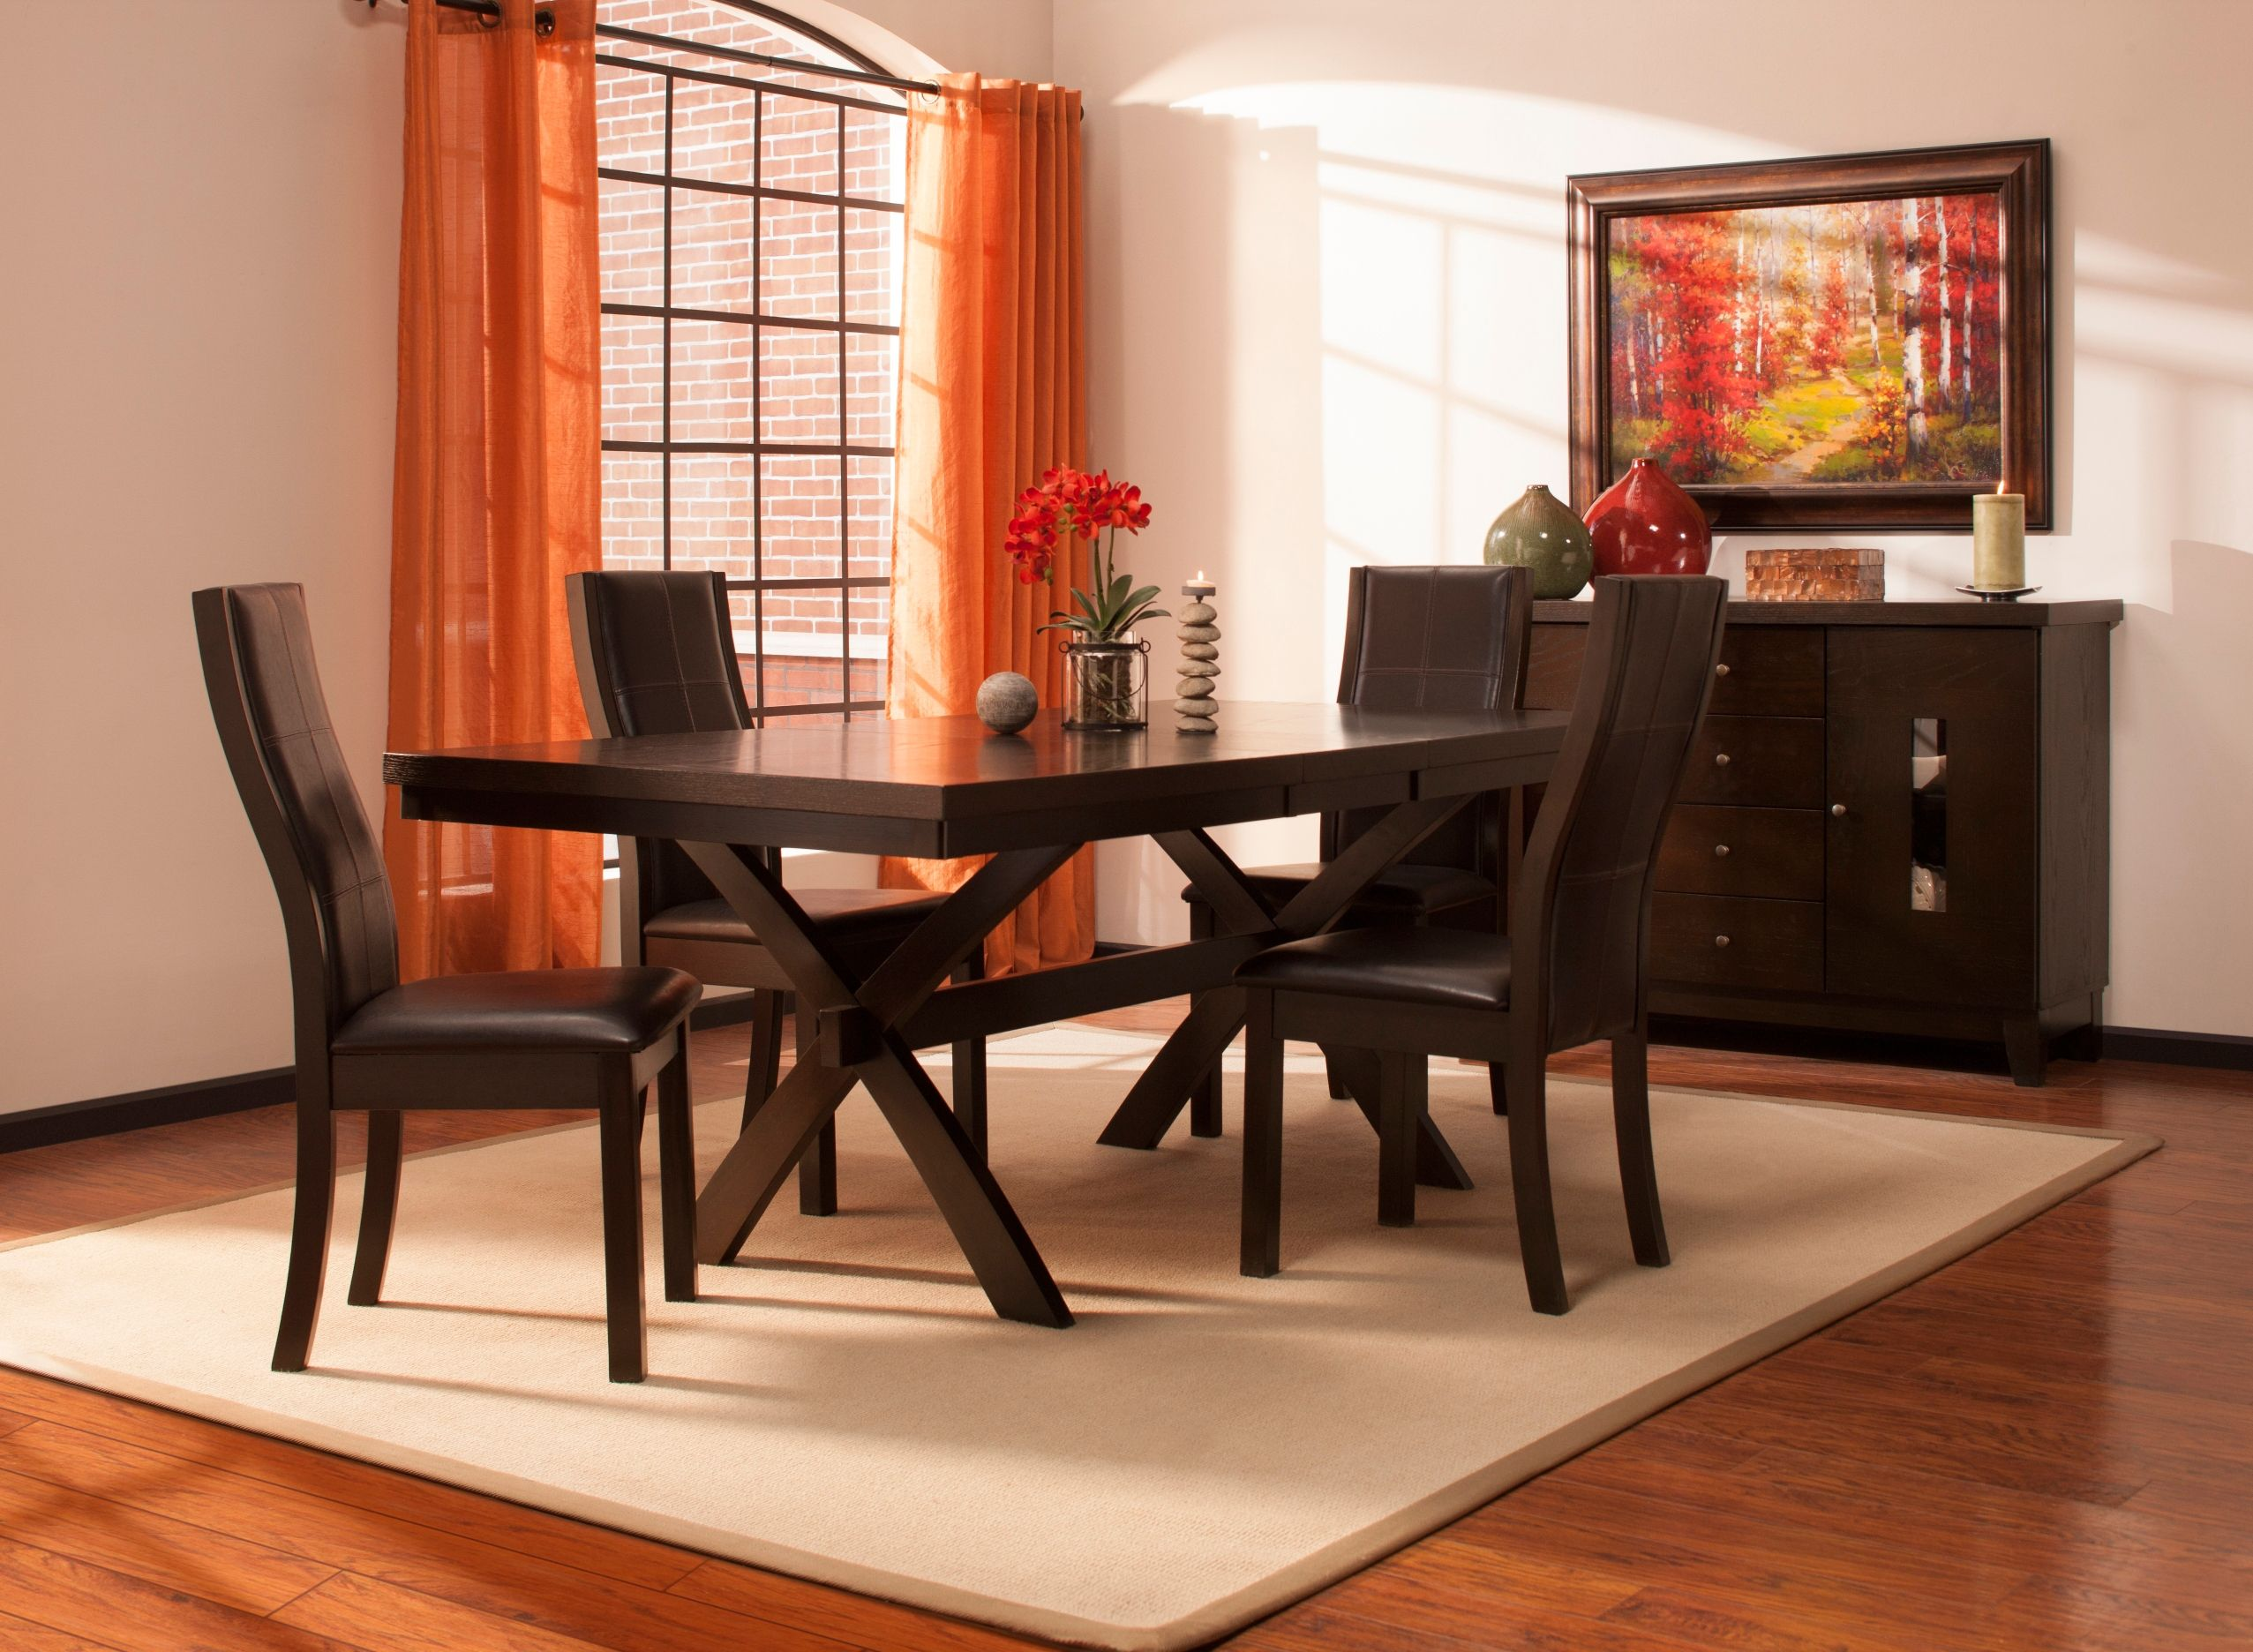 This gibson 5 piece dining set is sleek contemporary furniture with a little something extra